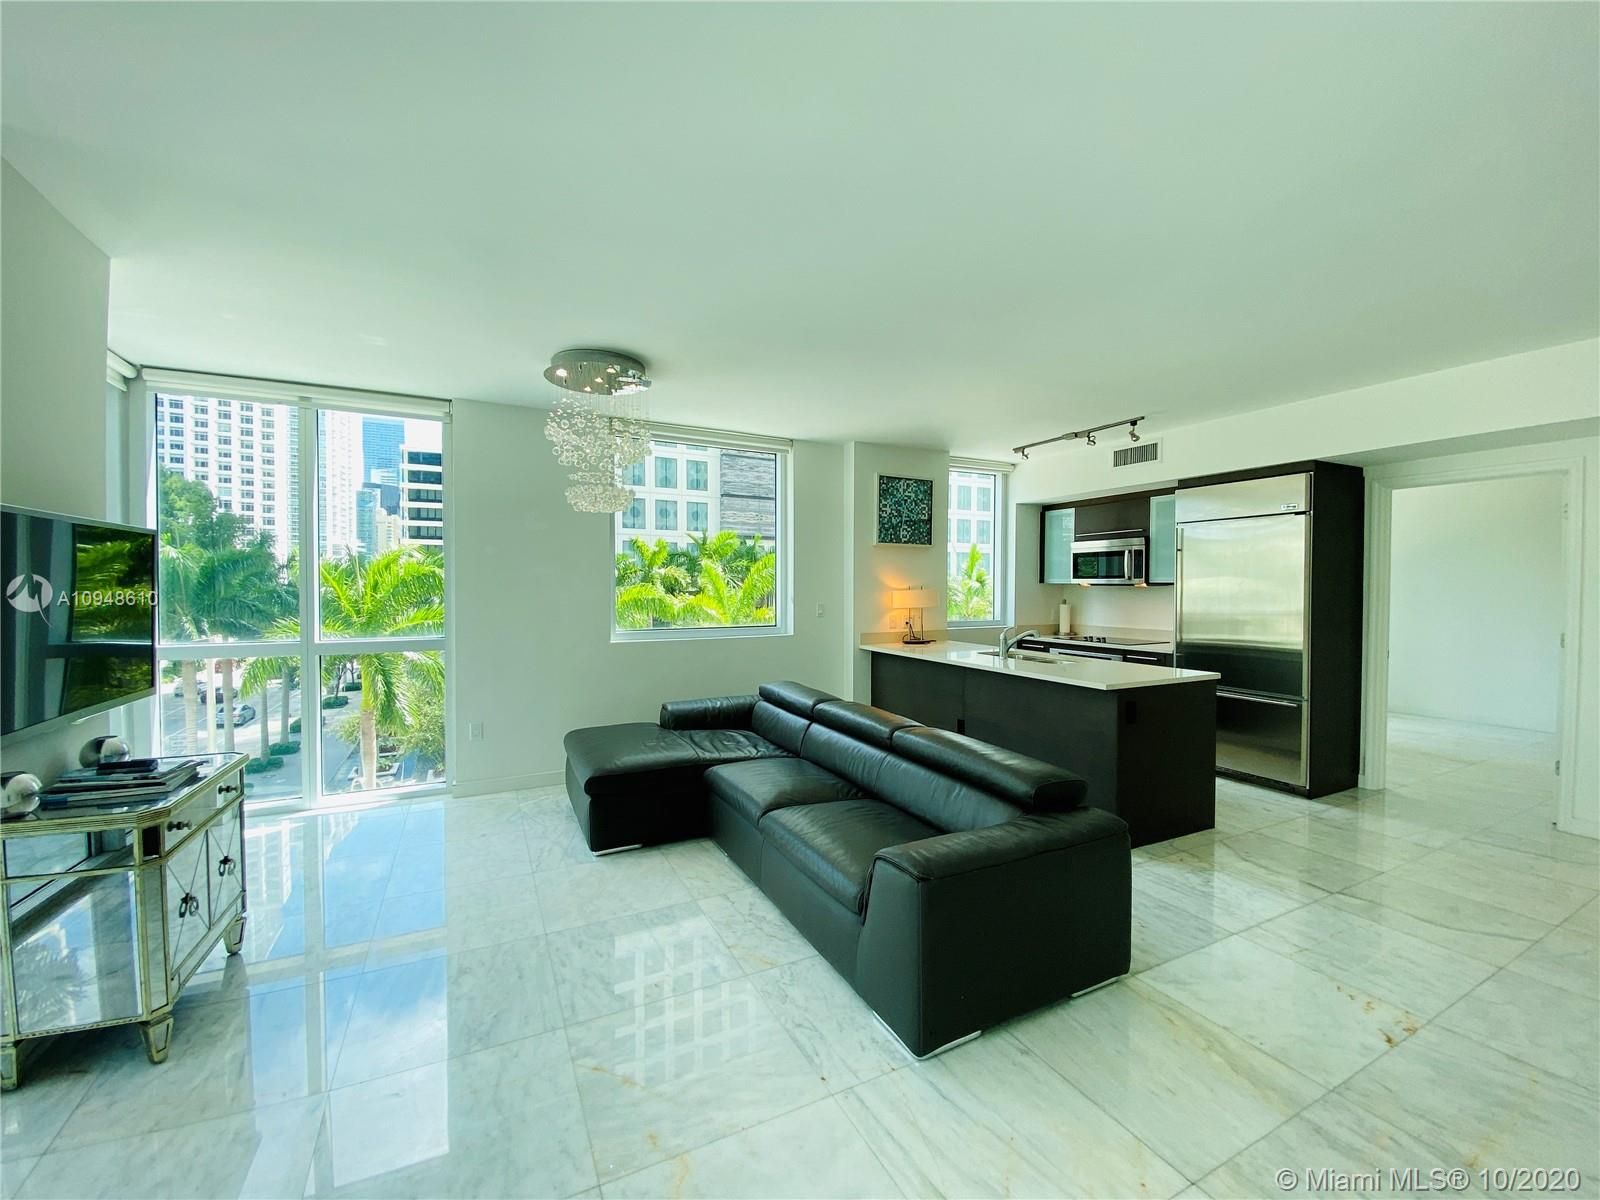 500 Brickell West Tower #302 - 500 Brickell Ave #302, Miami, FL 33131